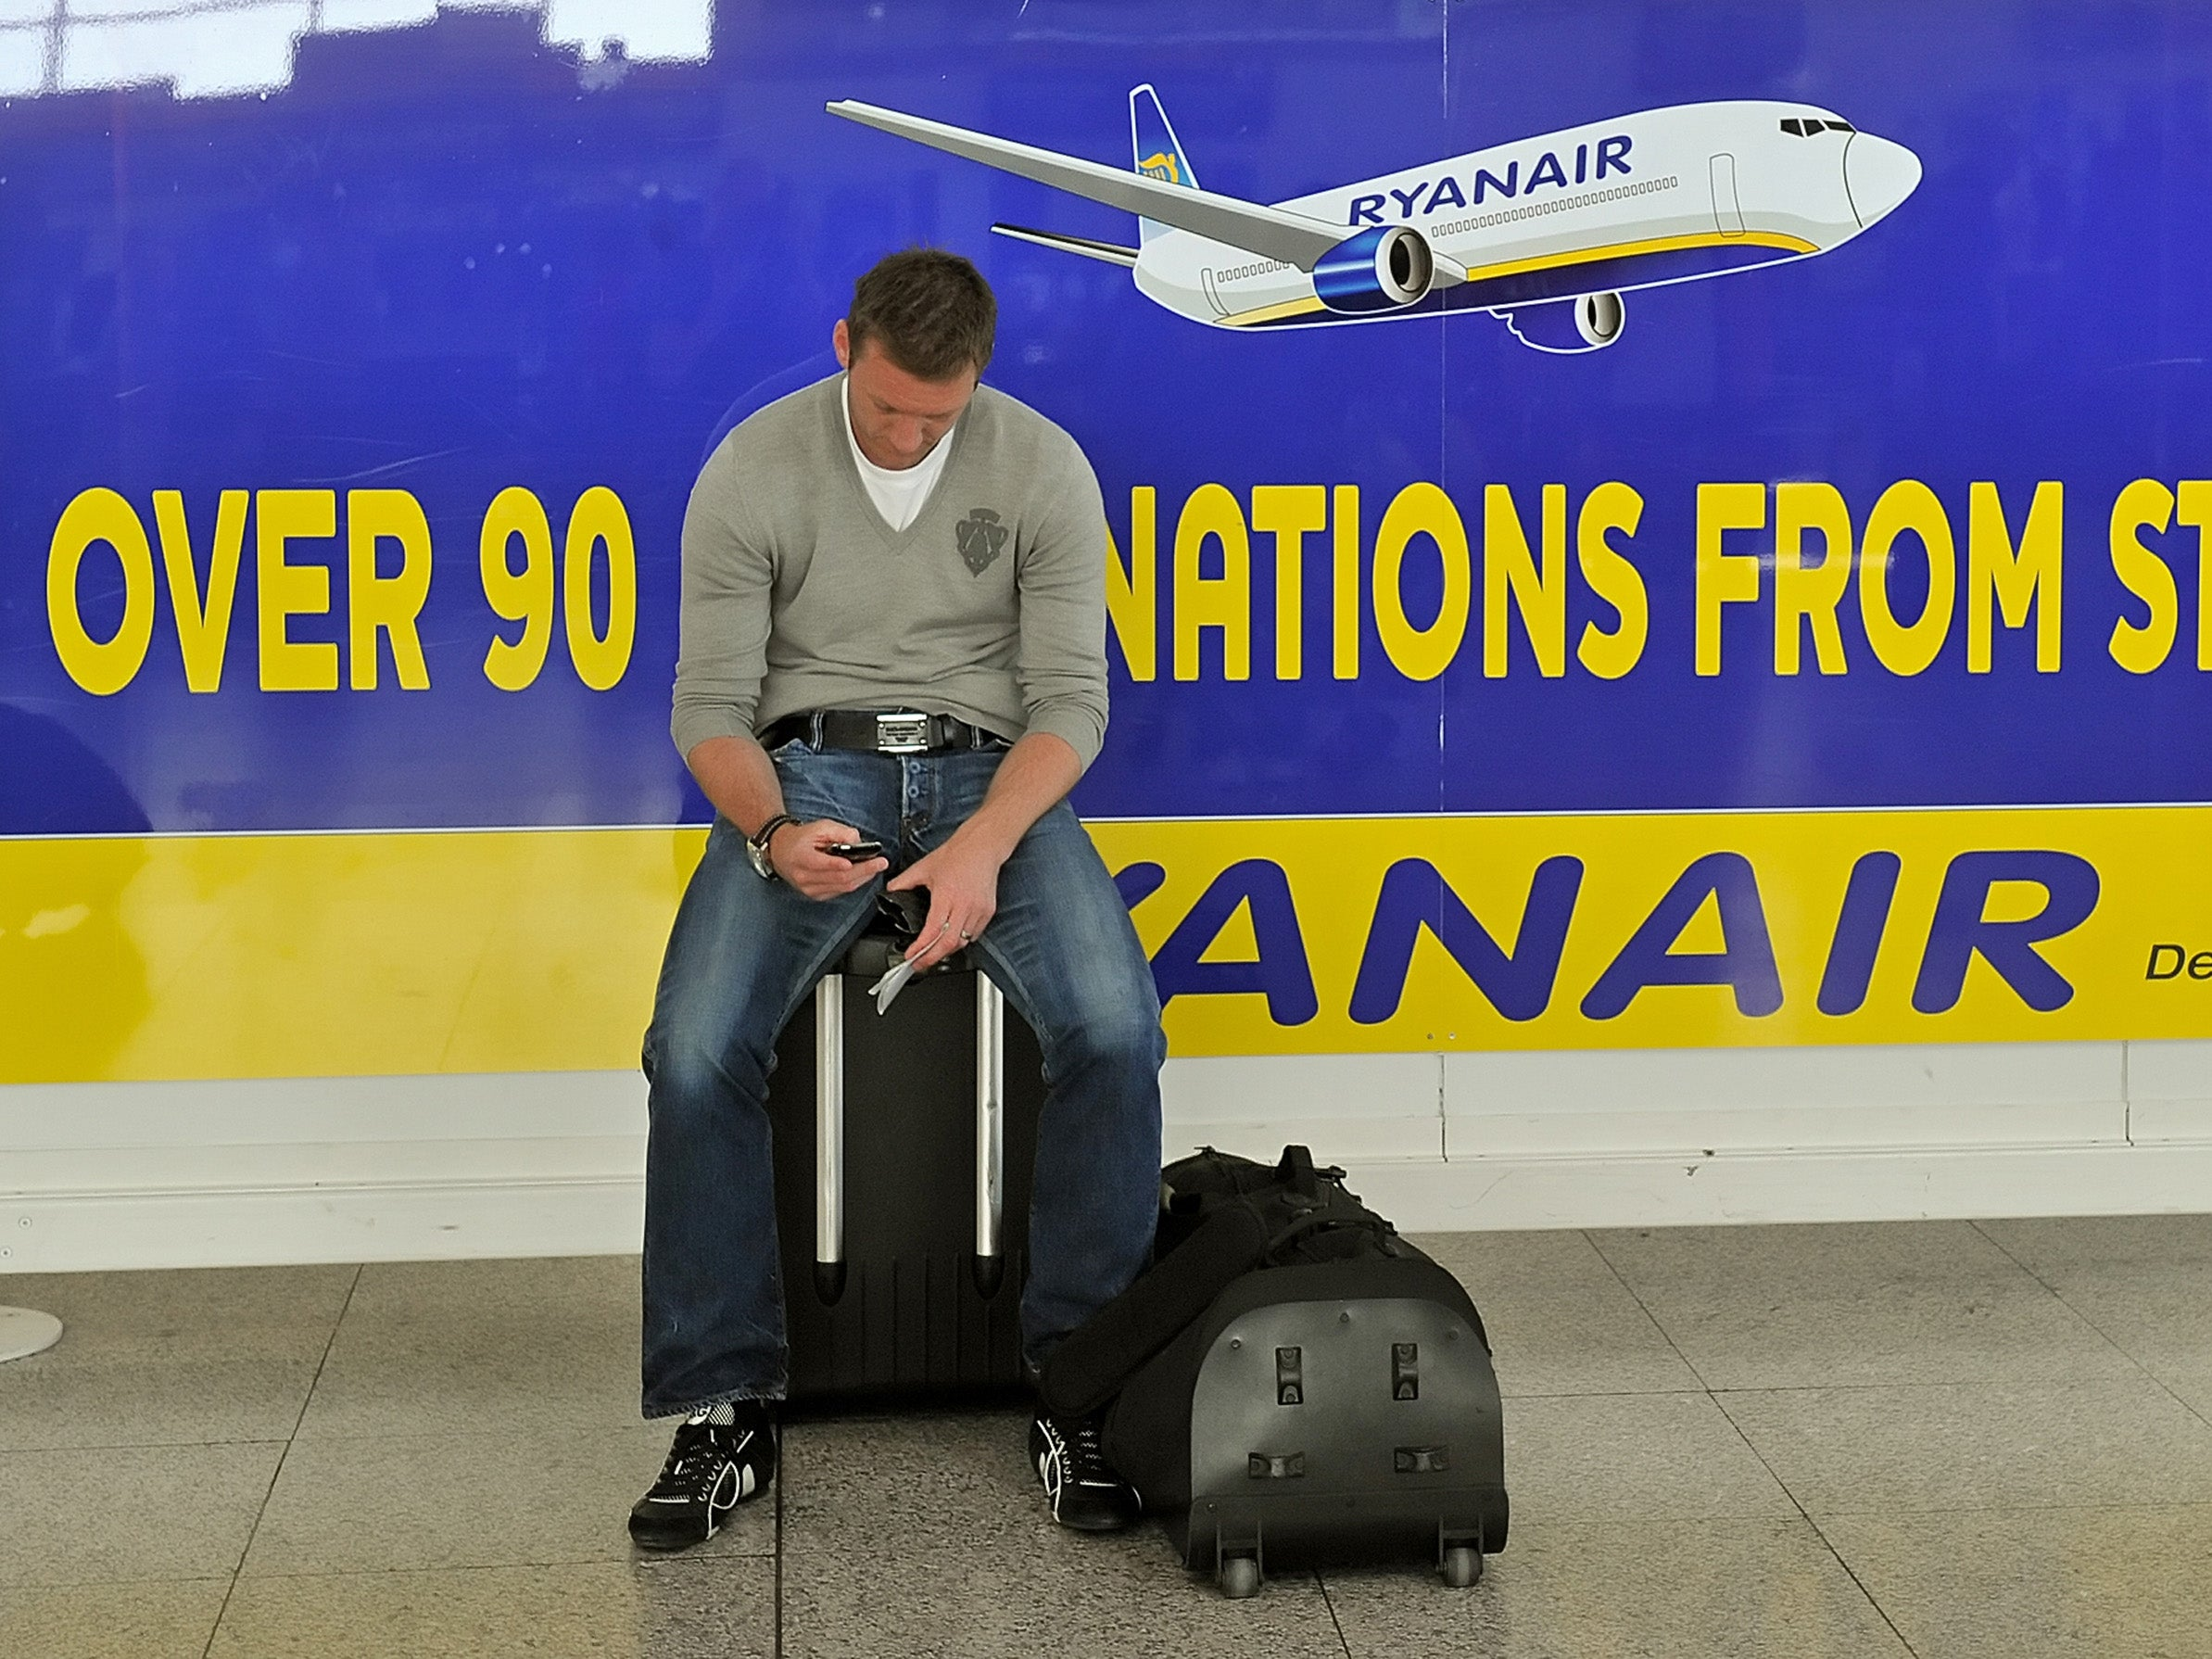 Ryanair passengers struggling to get compensation following cancellations and delays